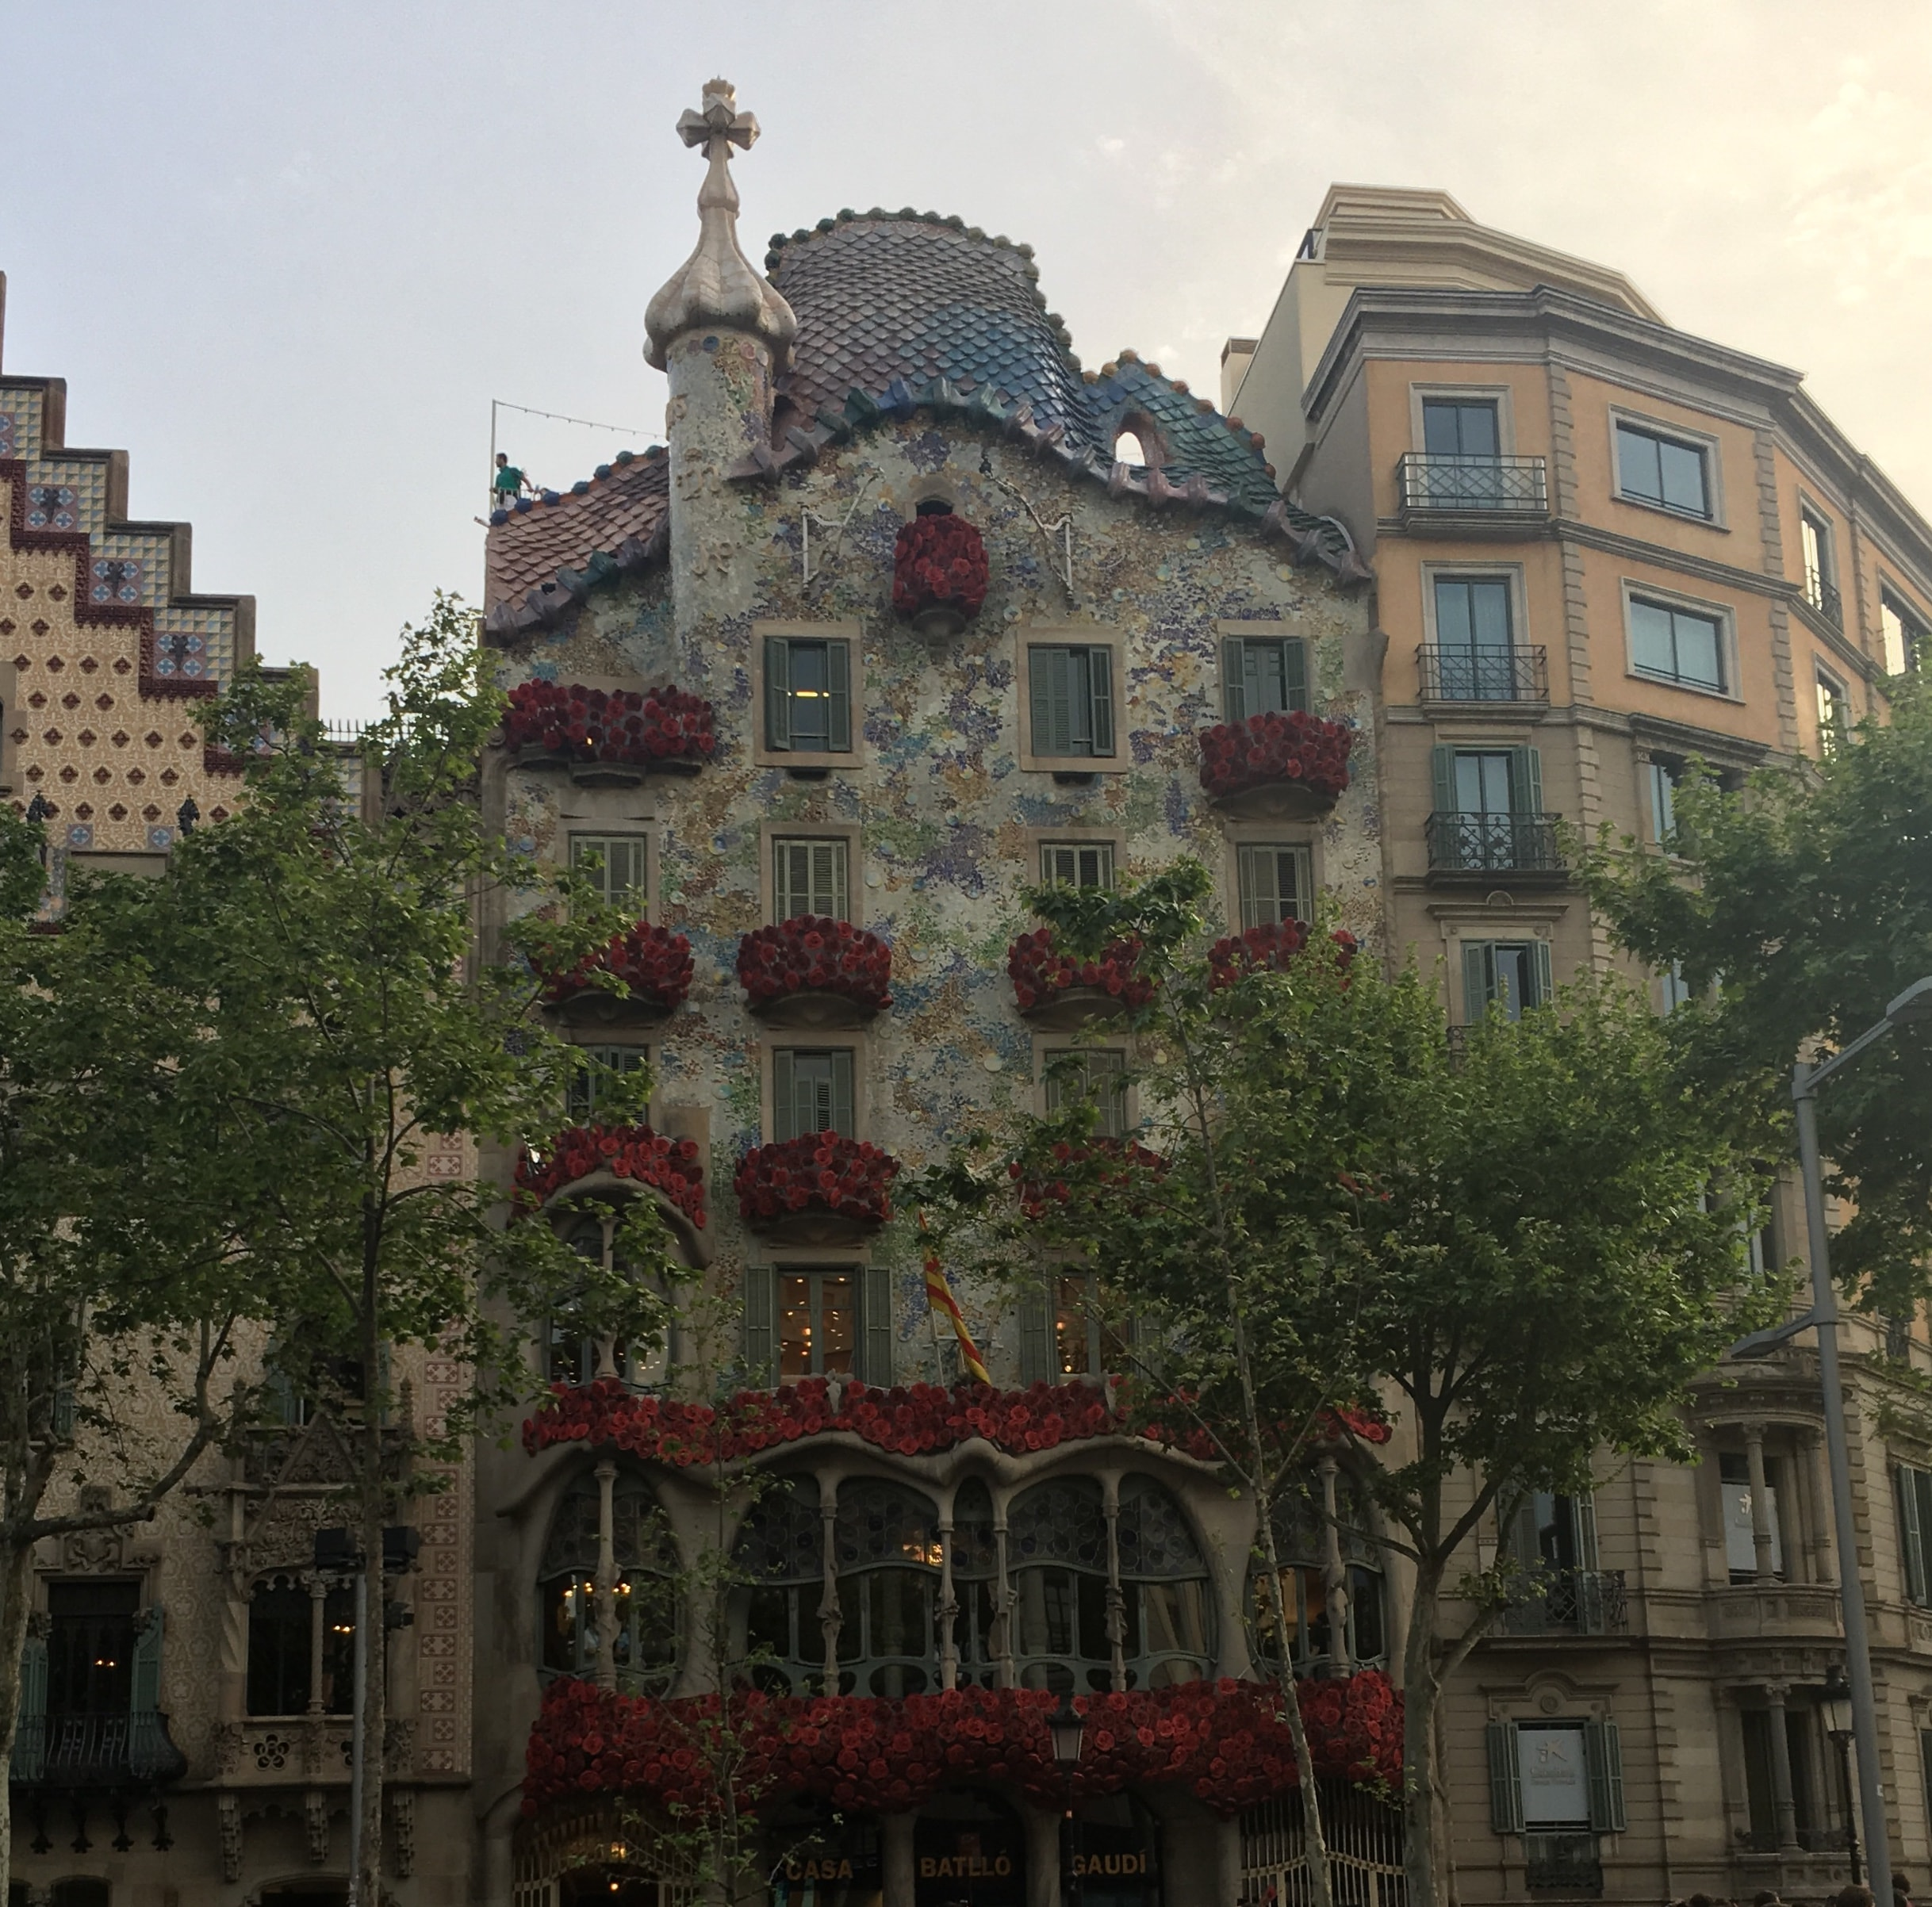 Casa Batlló - one of gaudi's cribs